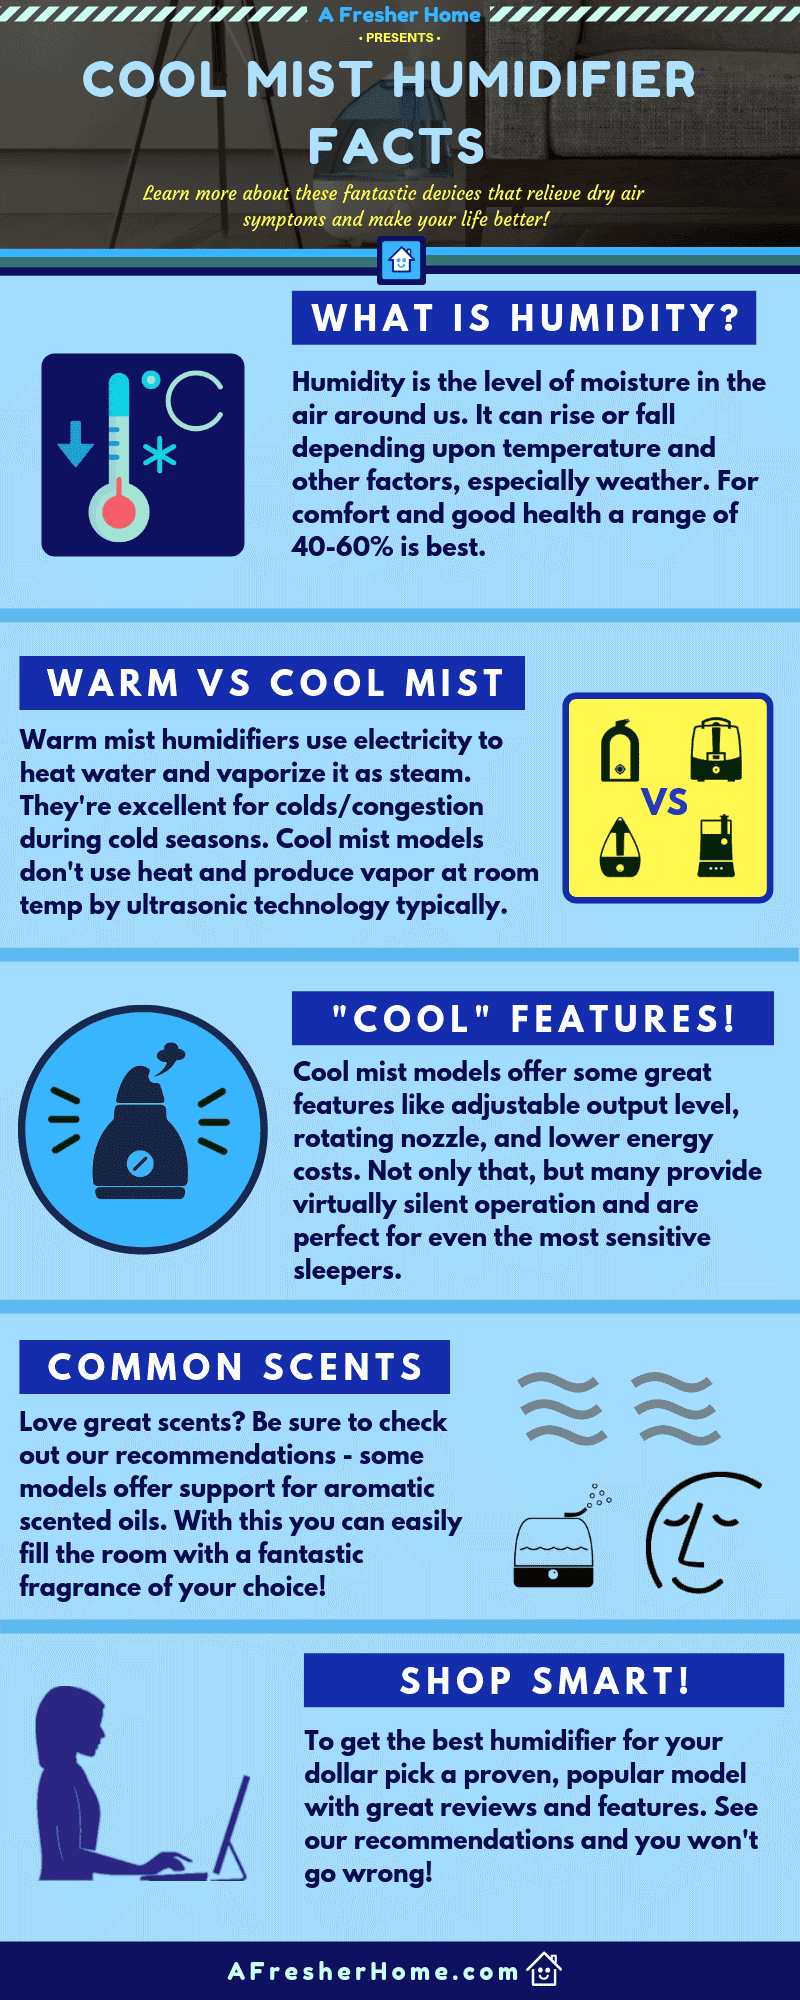 Cool mist humidifier facts infographic image